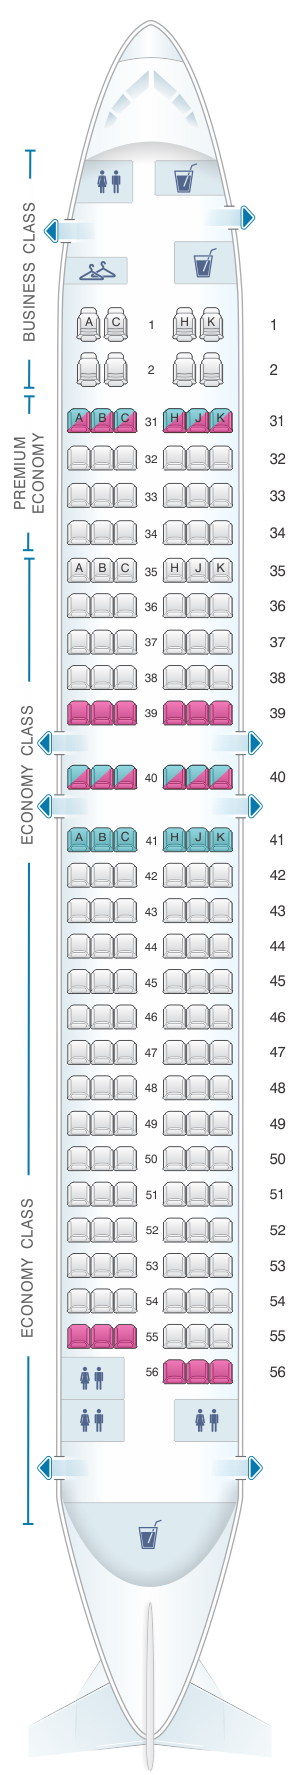 China Eastern Airlines Seat Map on